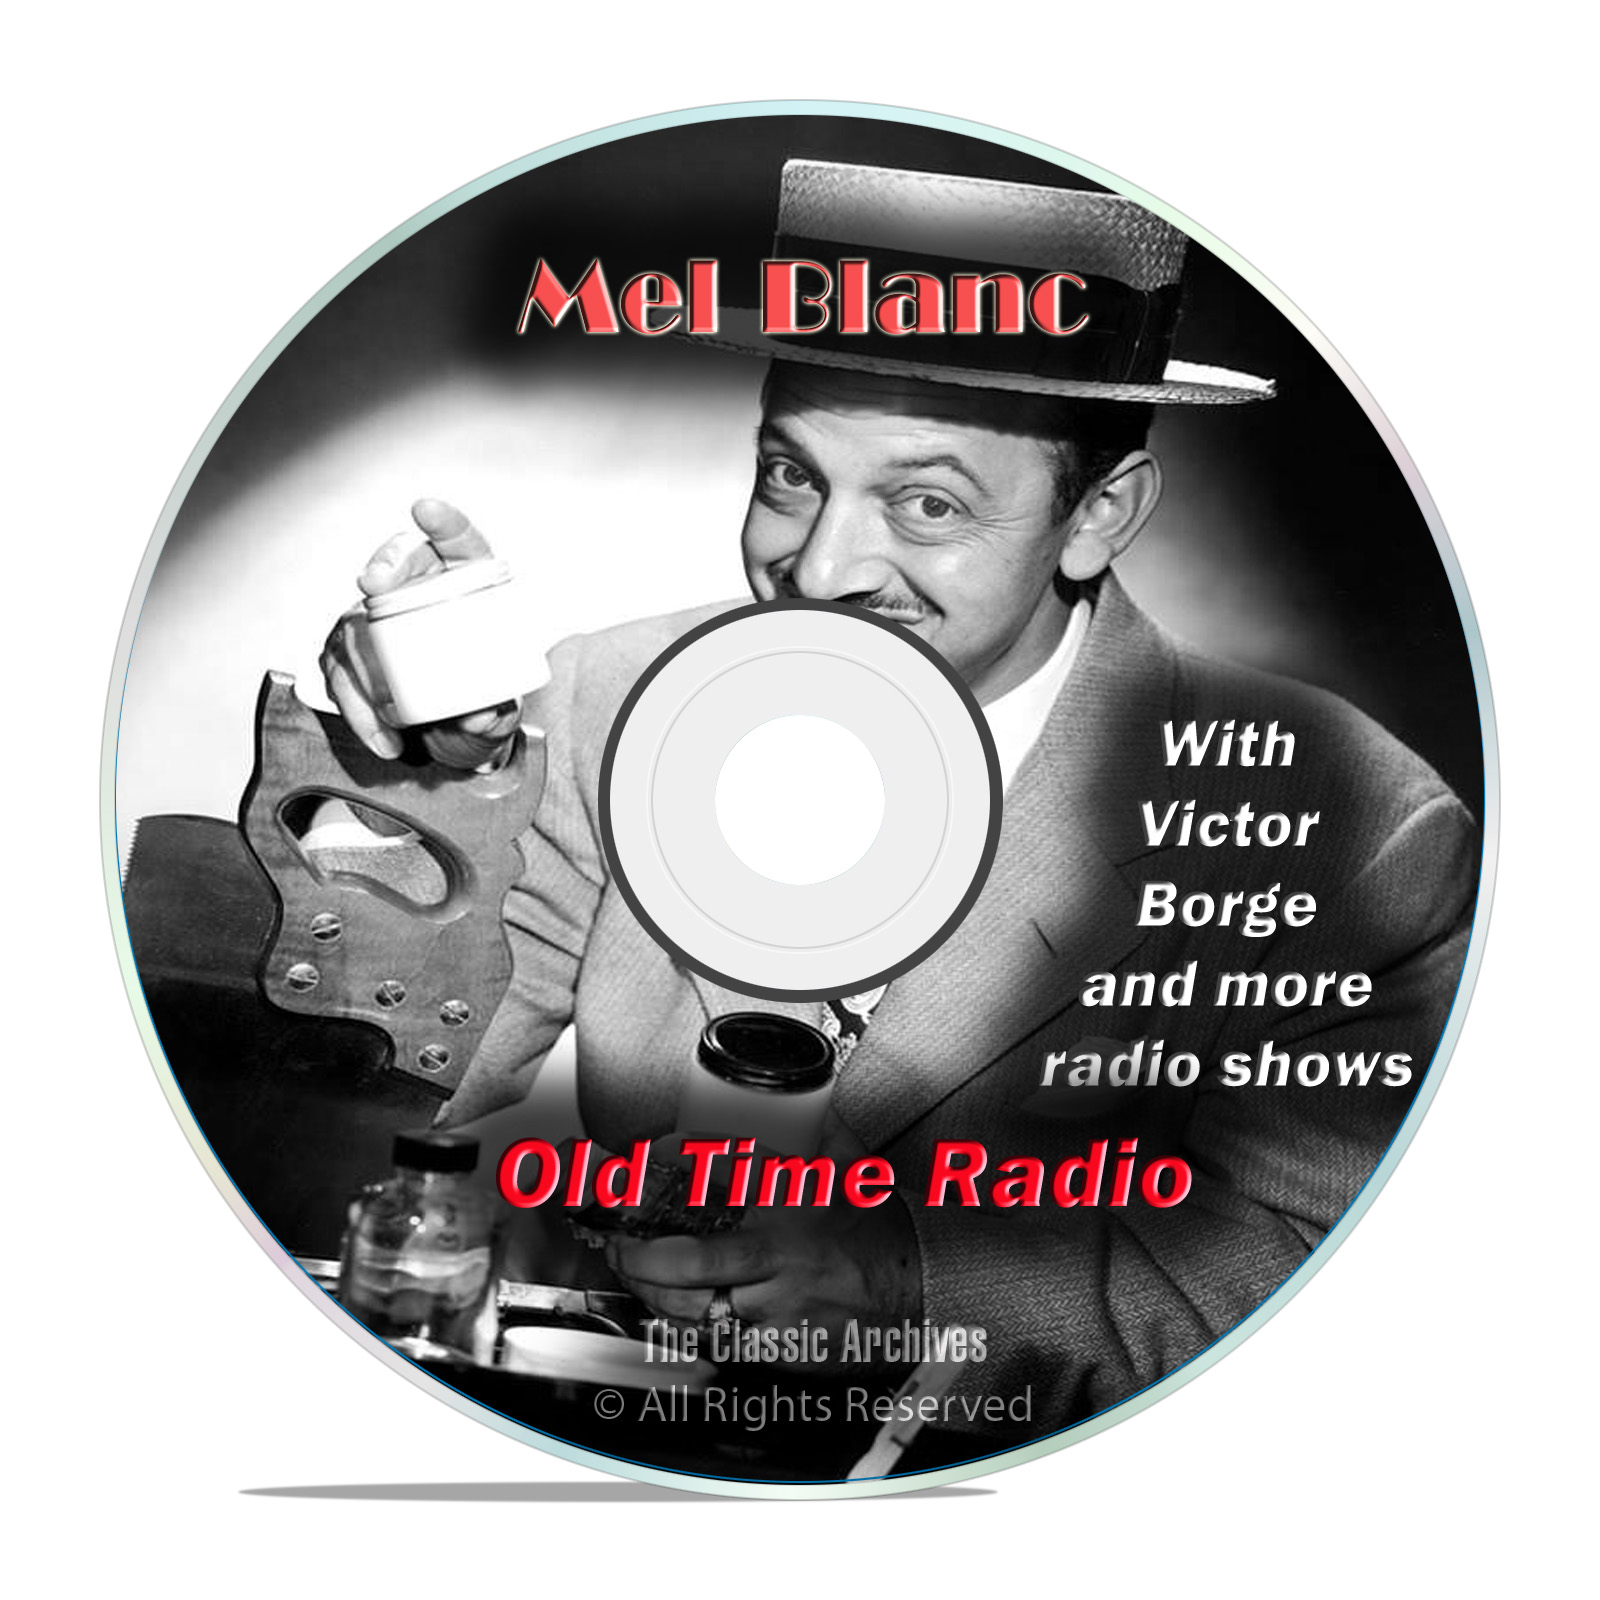 Mel Blanc, 672 Old Time Radio Sitcom Stand Up Comedy Variety Shows mp3 DVD